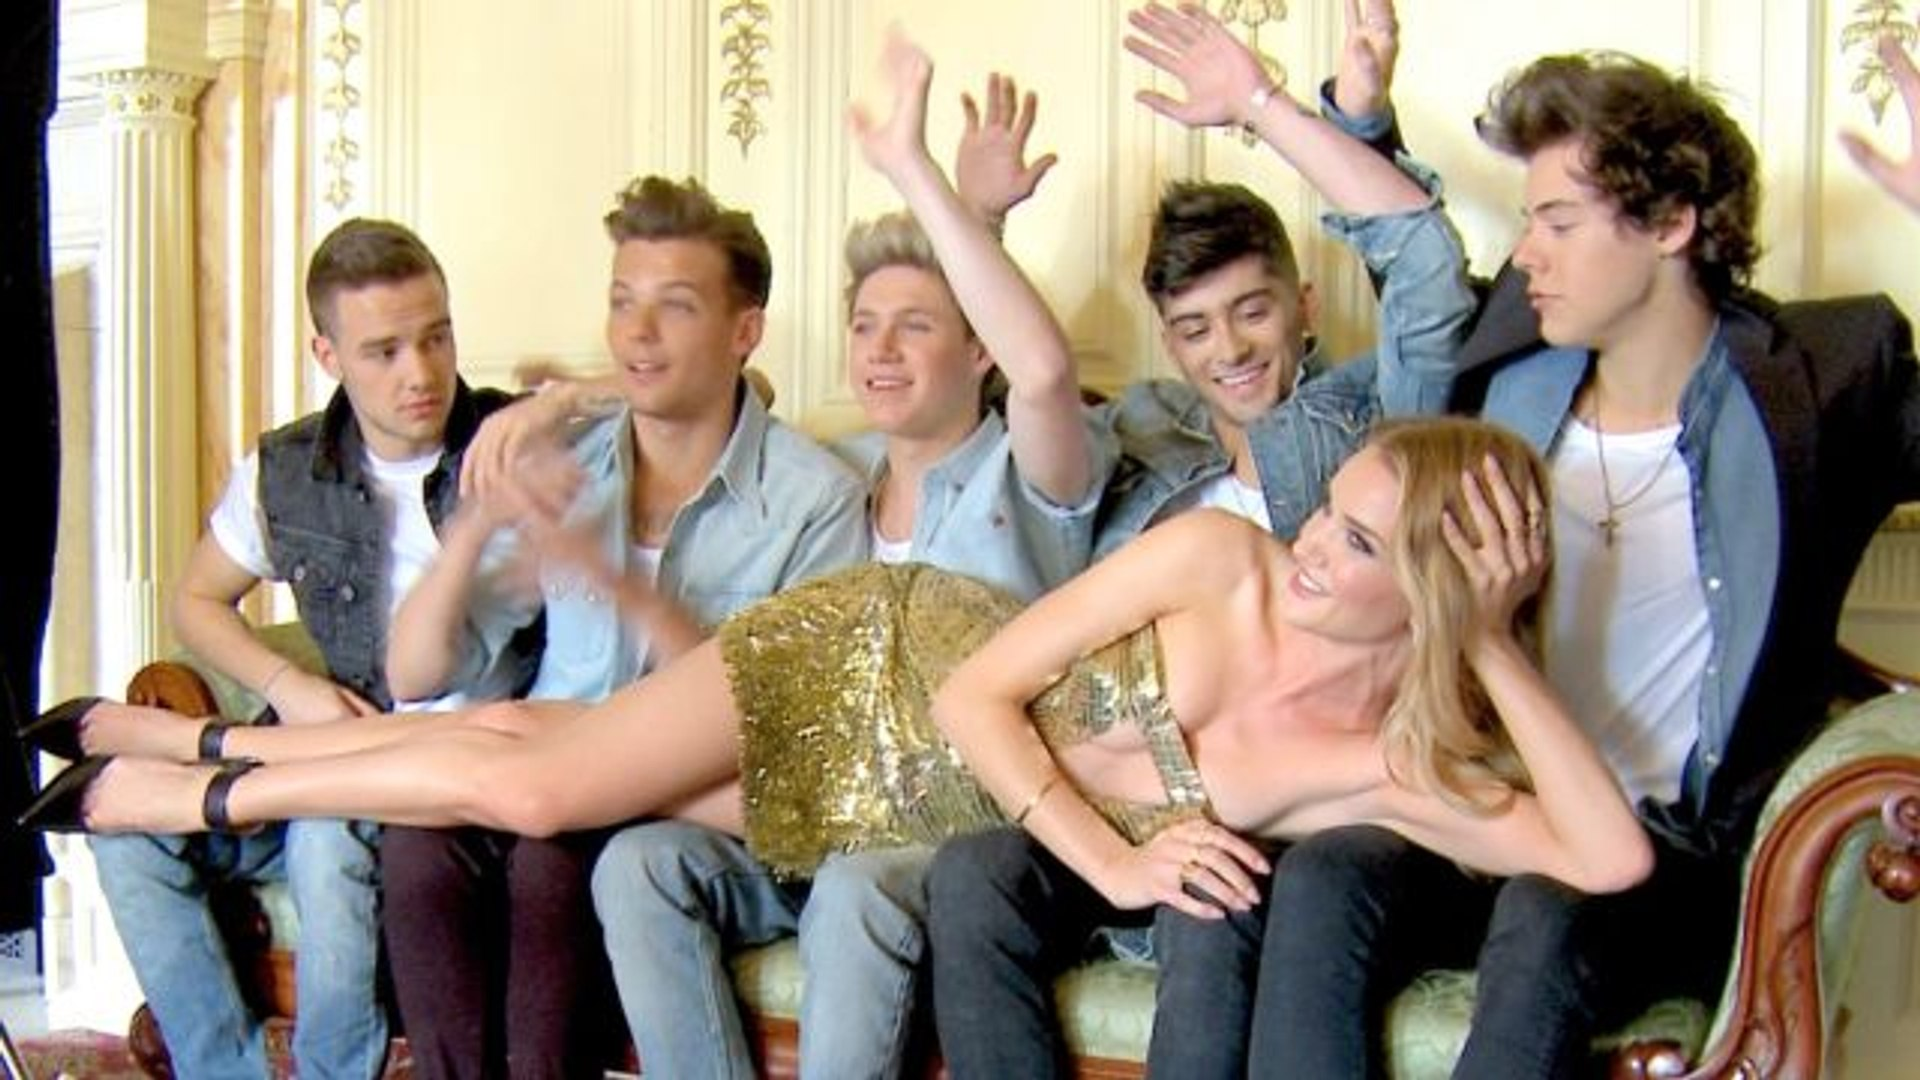 Glamour Cover Shoots - Go Behind the Scenes of One Direction's Photo Shoot with Rosie Huntington-Whi